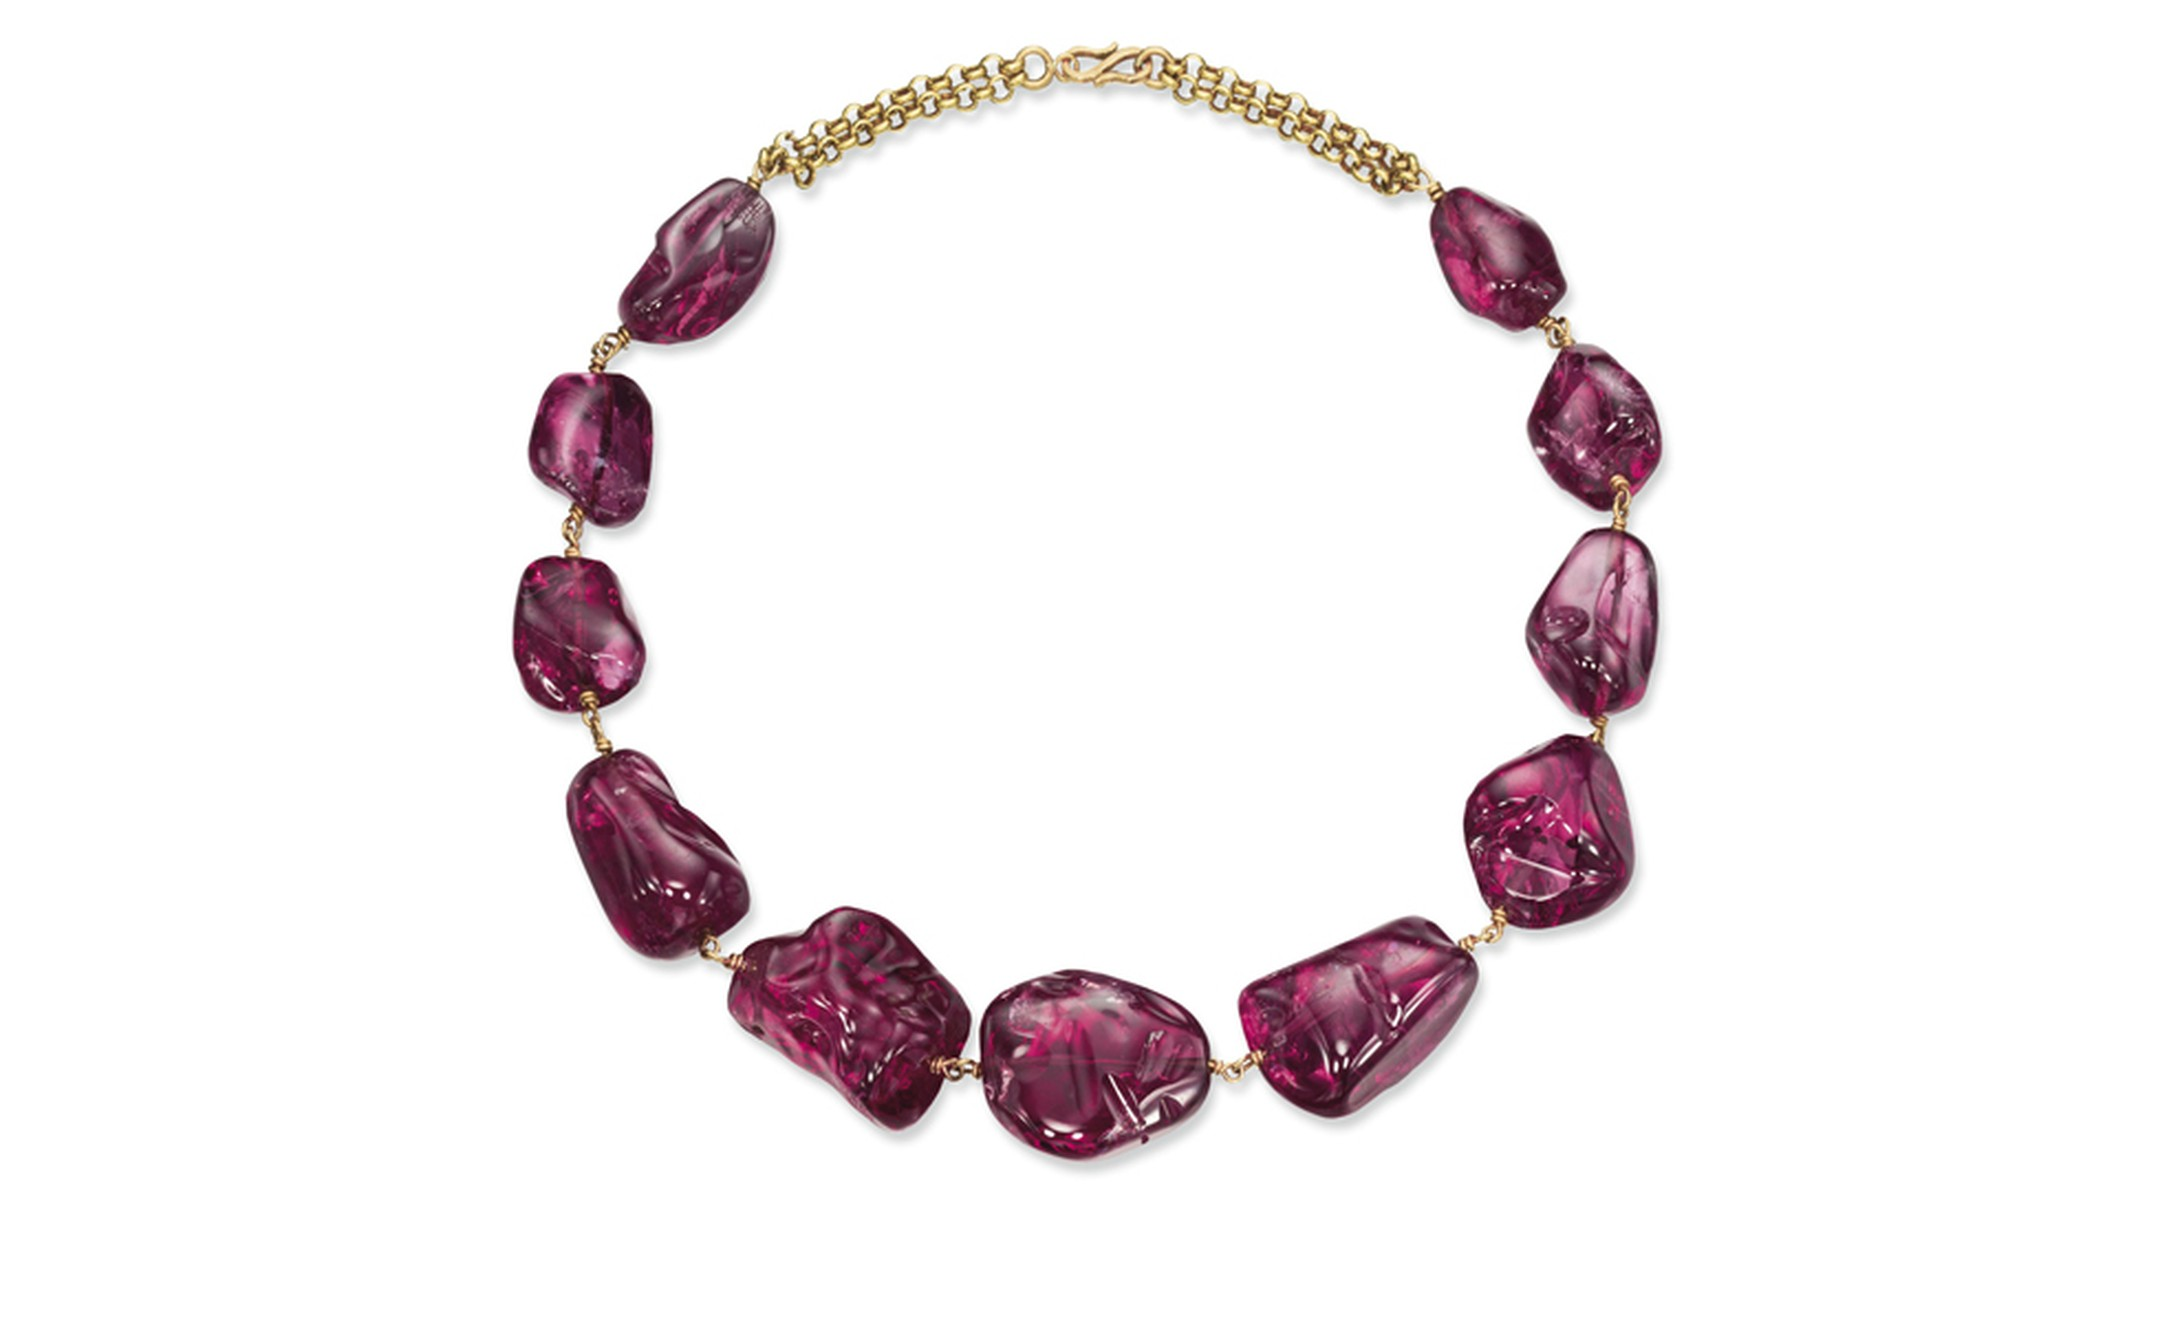 Lot 306. An imperial Mughal Spinel Necklace. With eleven polished spinels, yellow gold link backchain and hook clasp. Estimate CHF 1,450,000 - CHF 2,400,000 SOLD FOR CHF 4,579,000